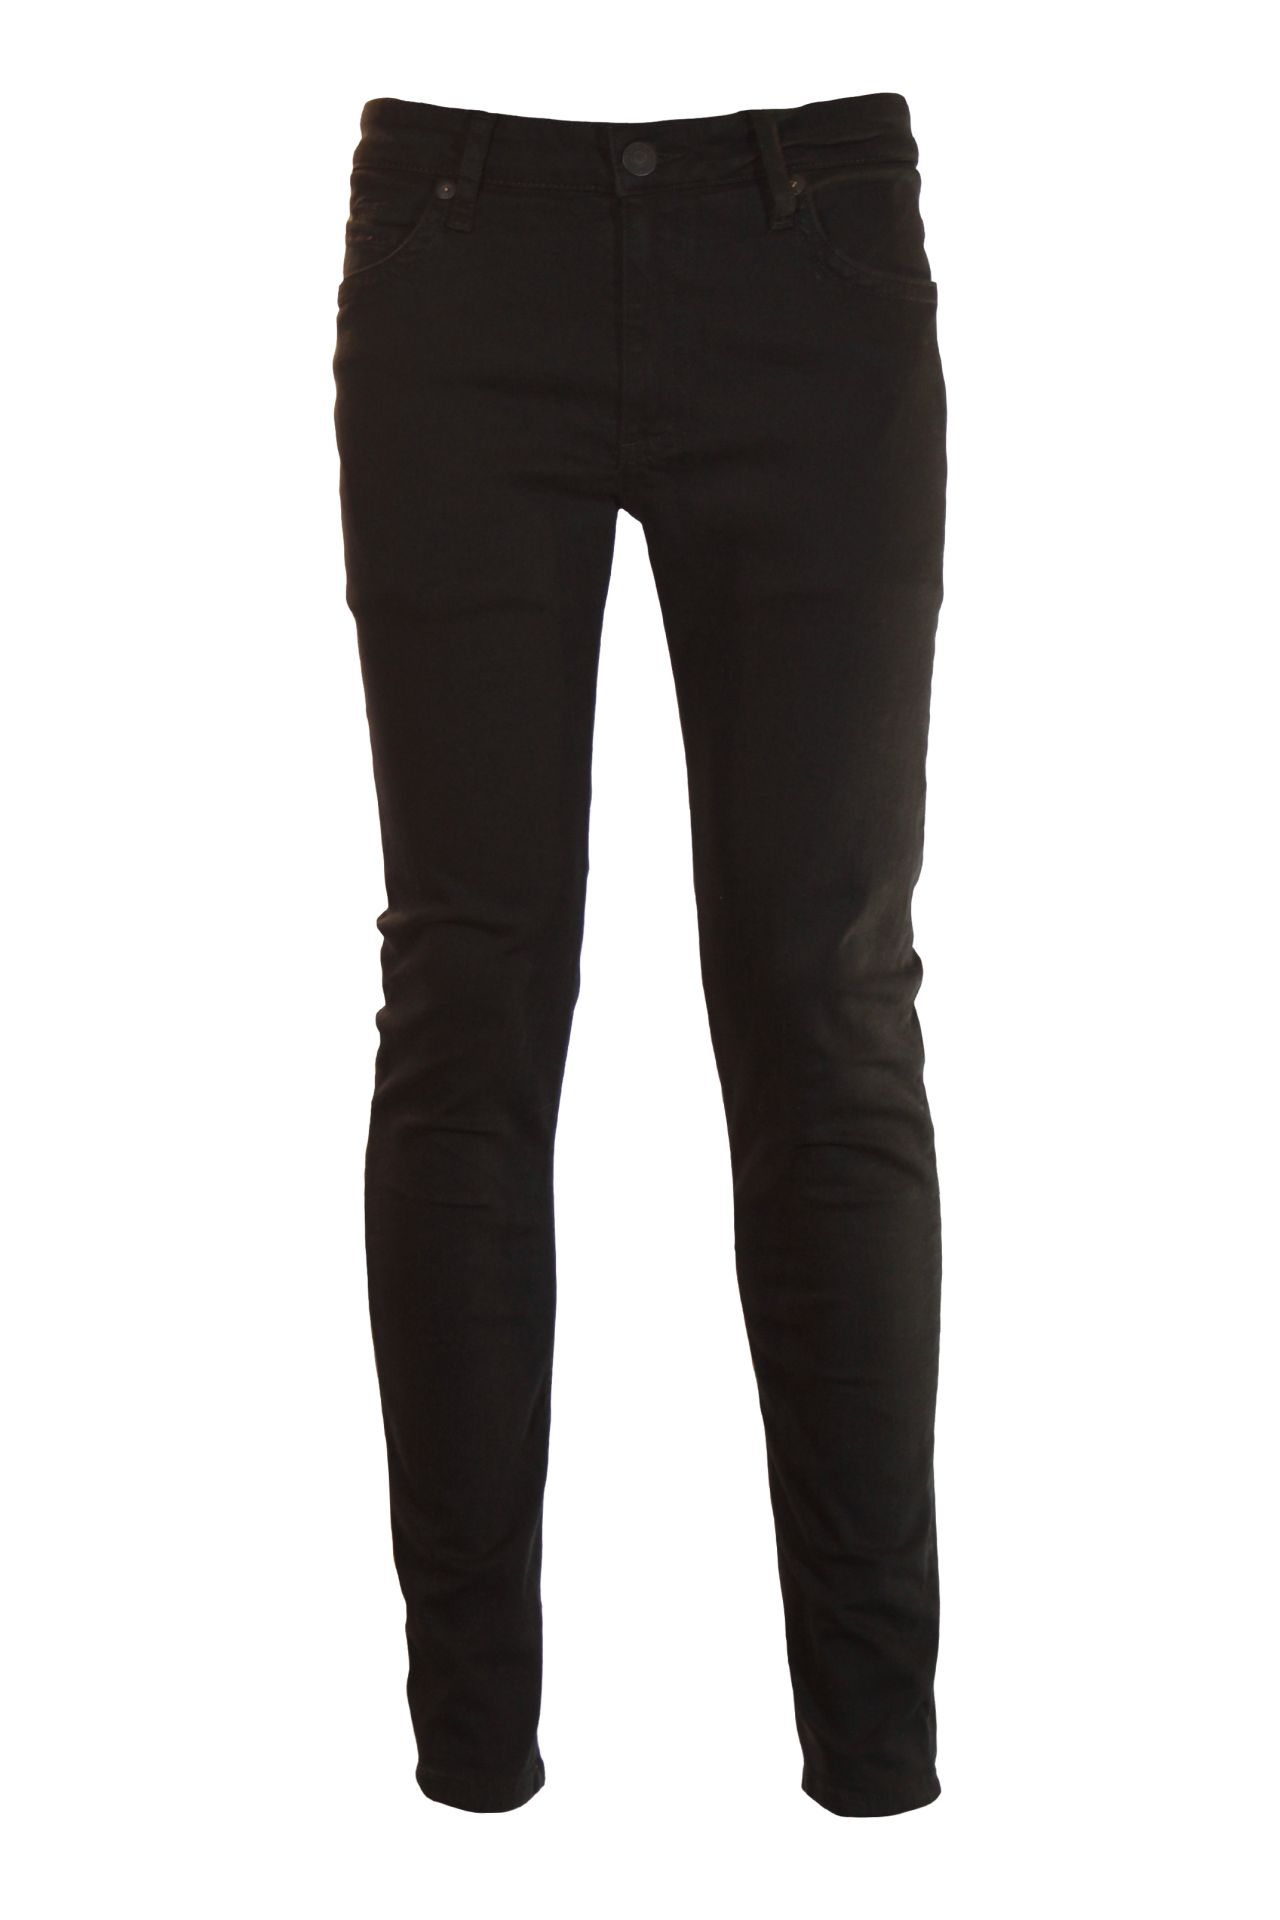 SKINNY JEANS IN PURE BLACK WITH JET BLACK SW